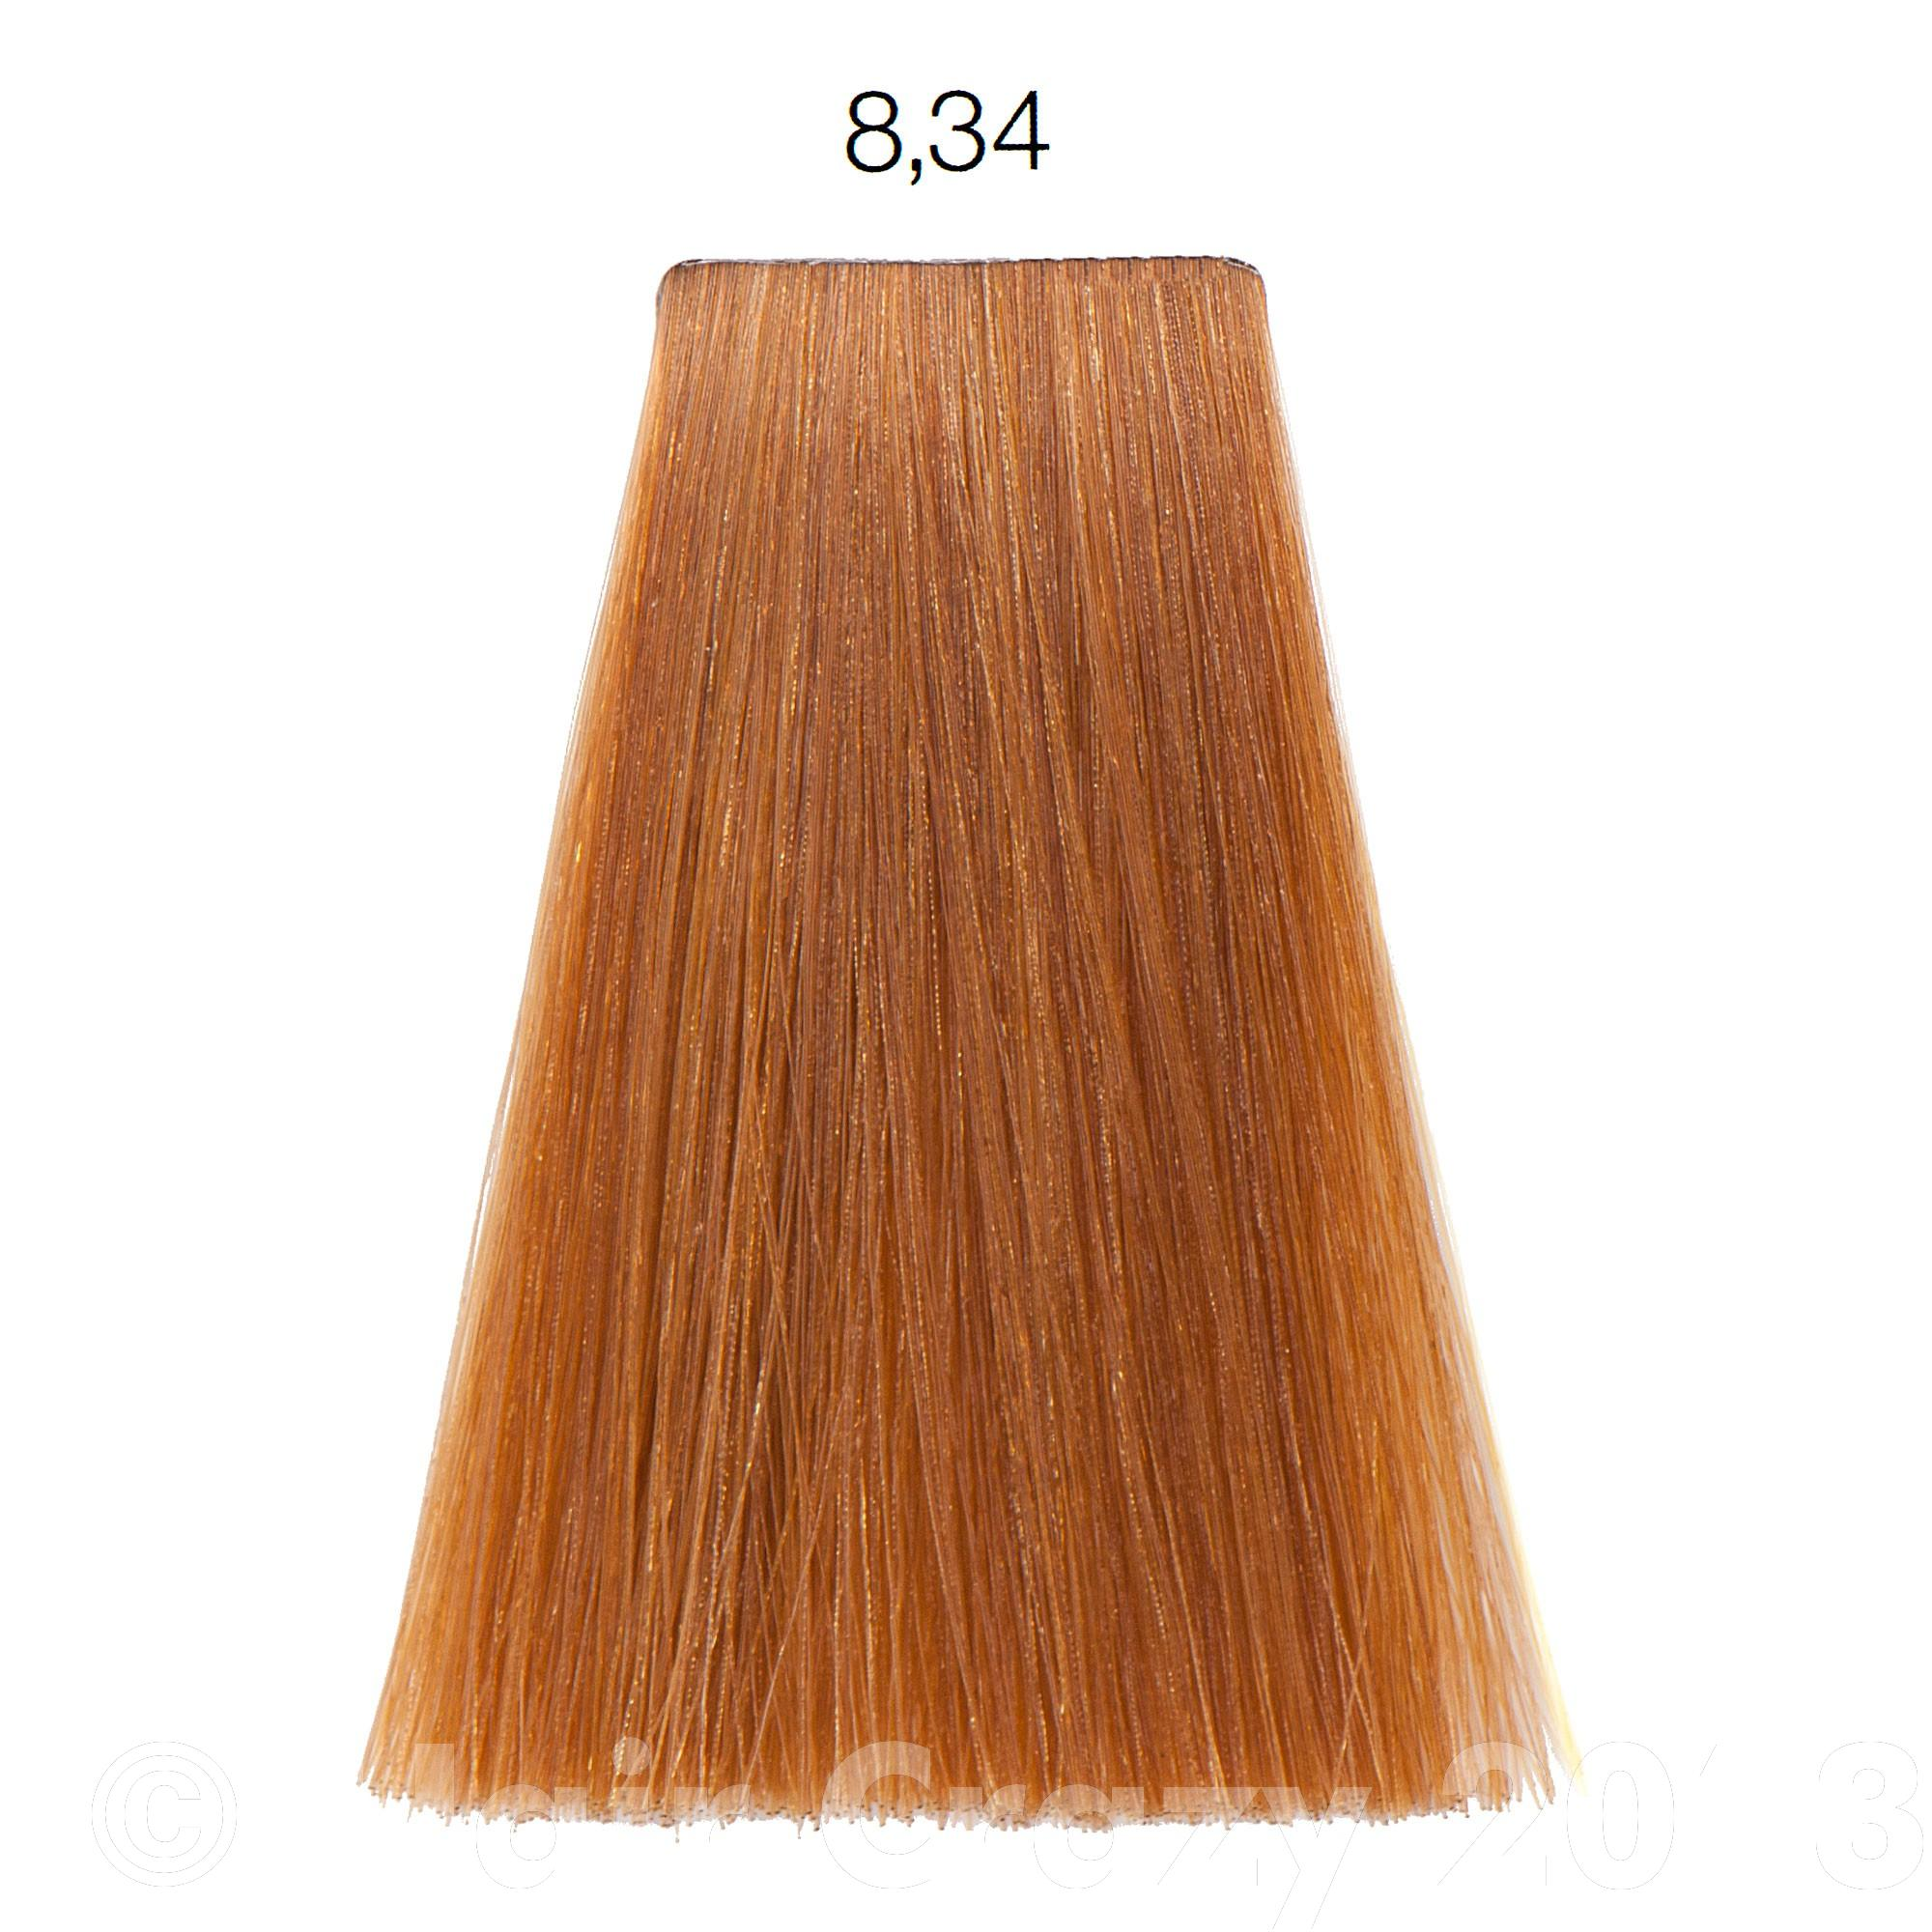 INOA - mixing two shades 7.43 and 8.34 ? - Forums - HairCrazy.com